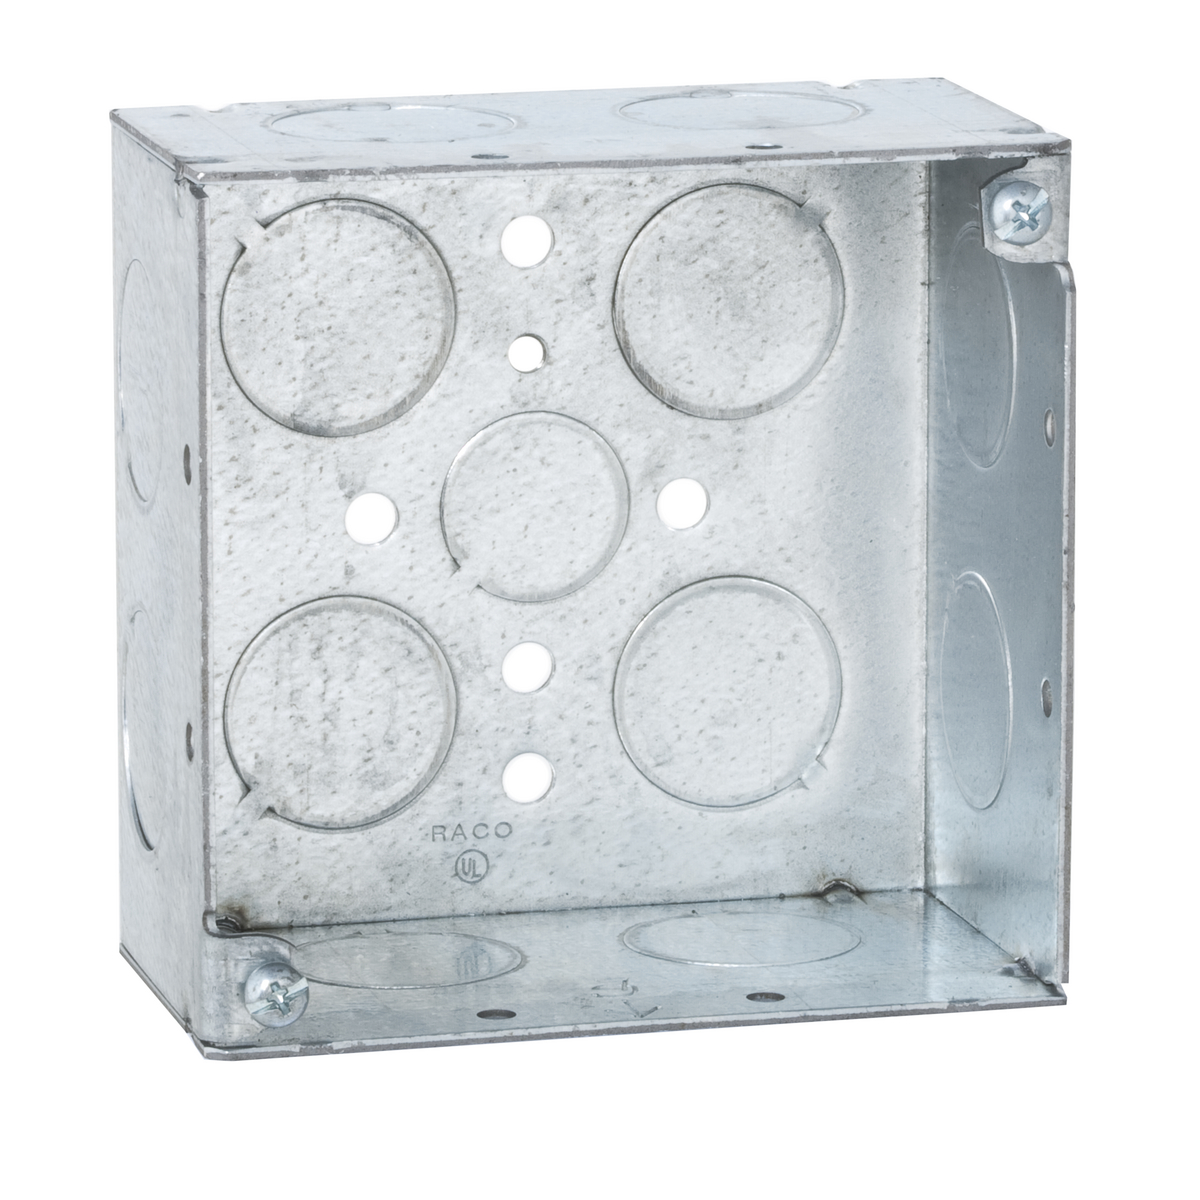 Hubbell-Raco 231 Square Box